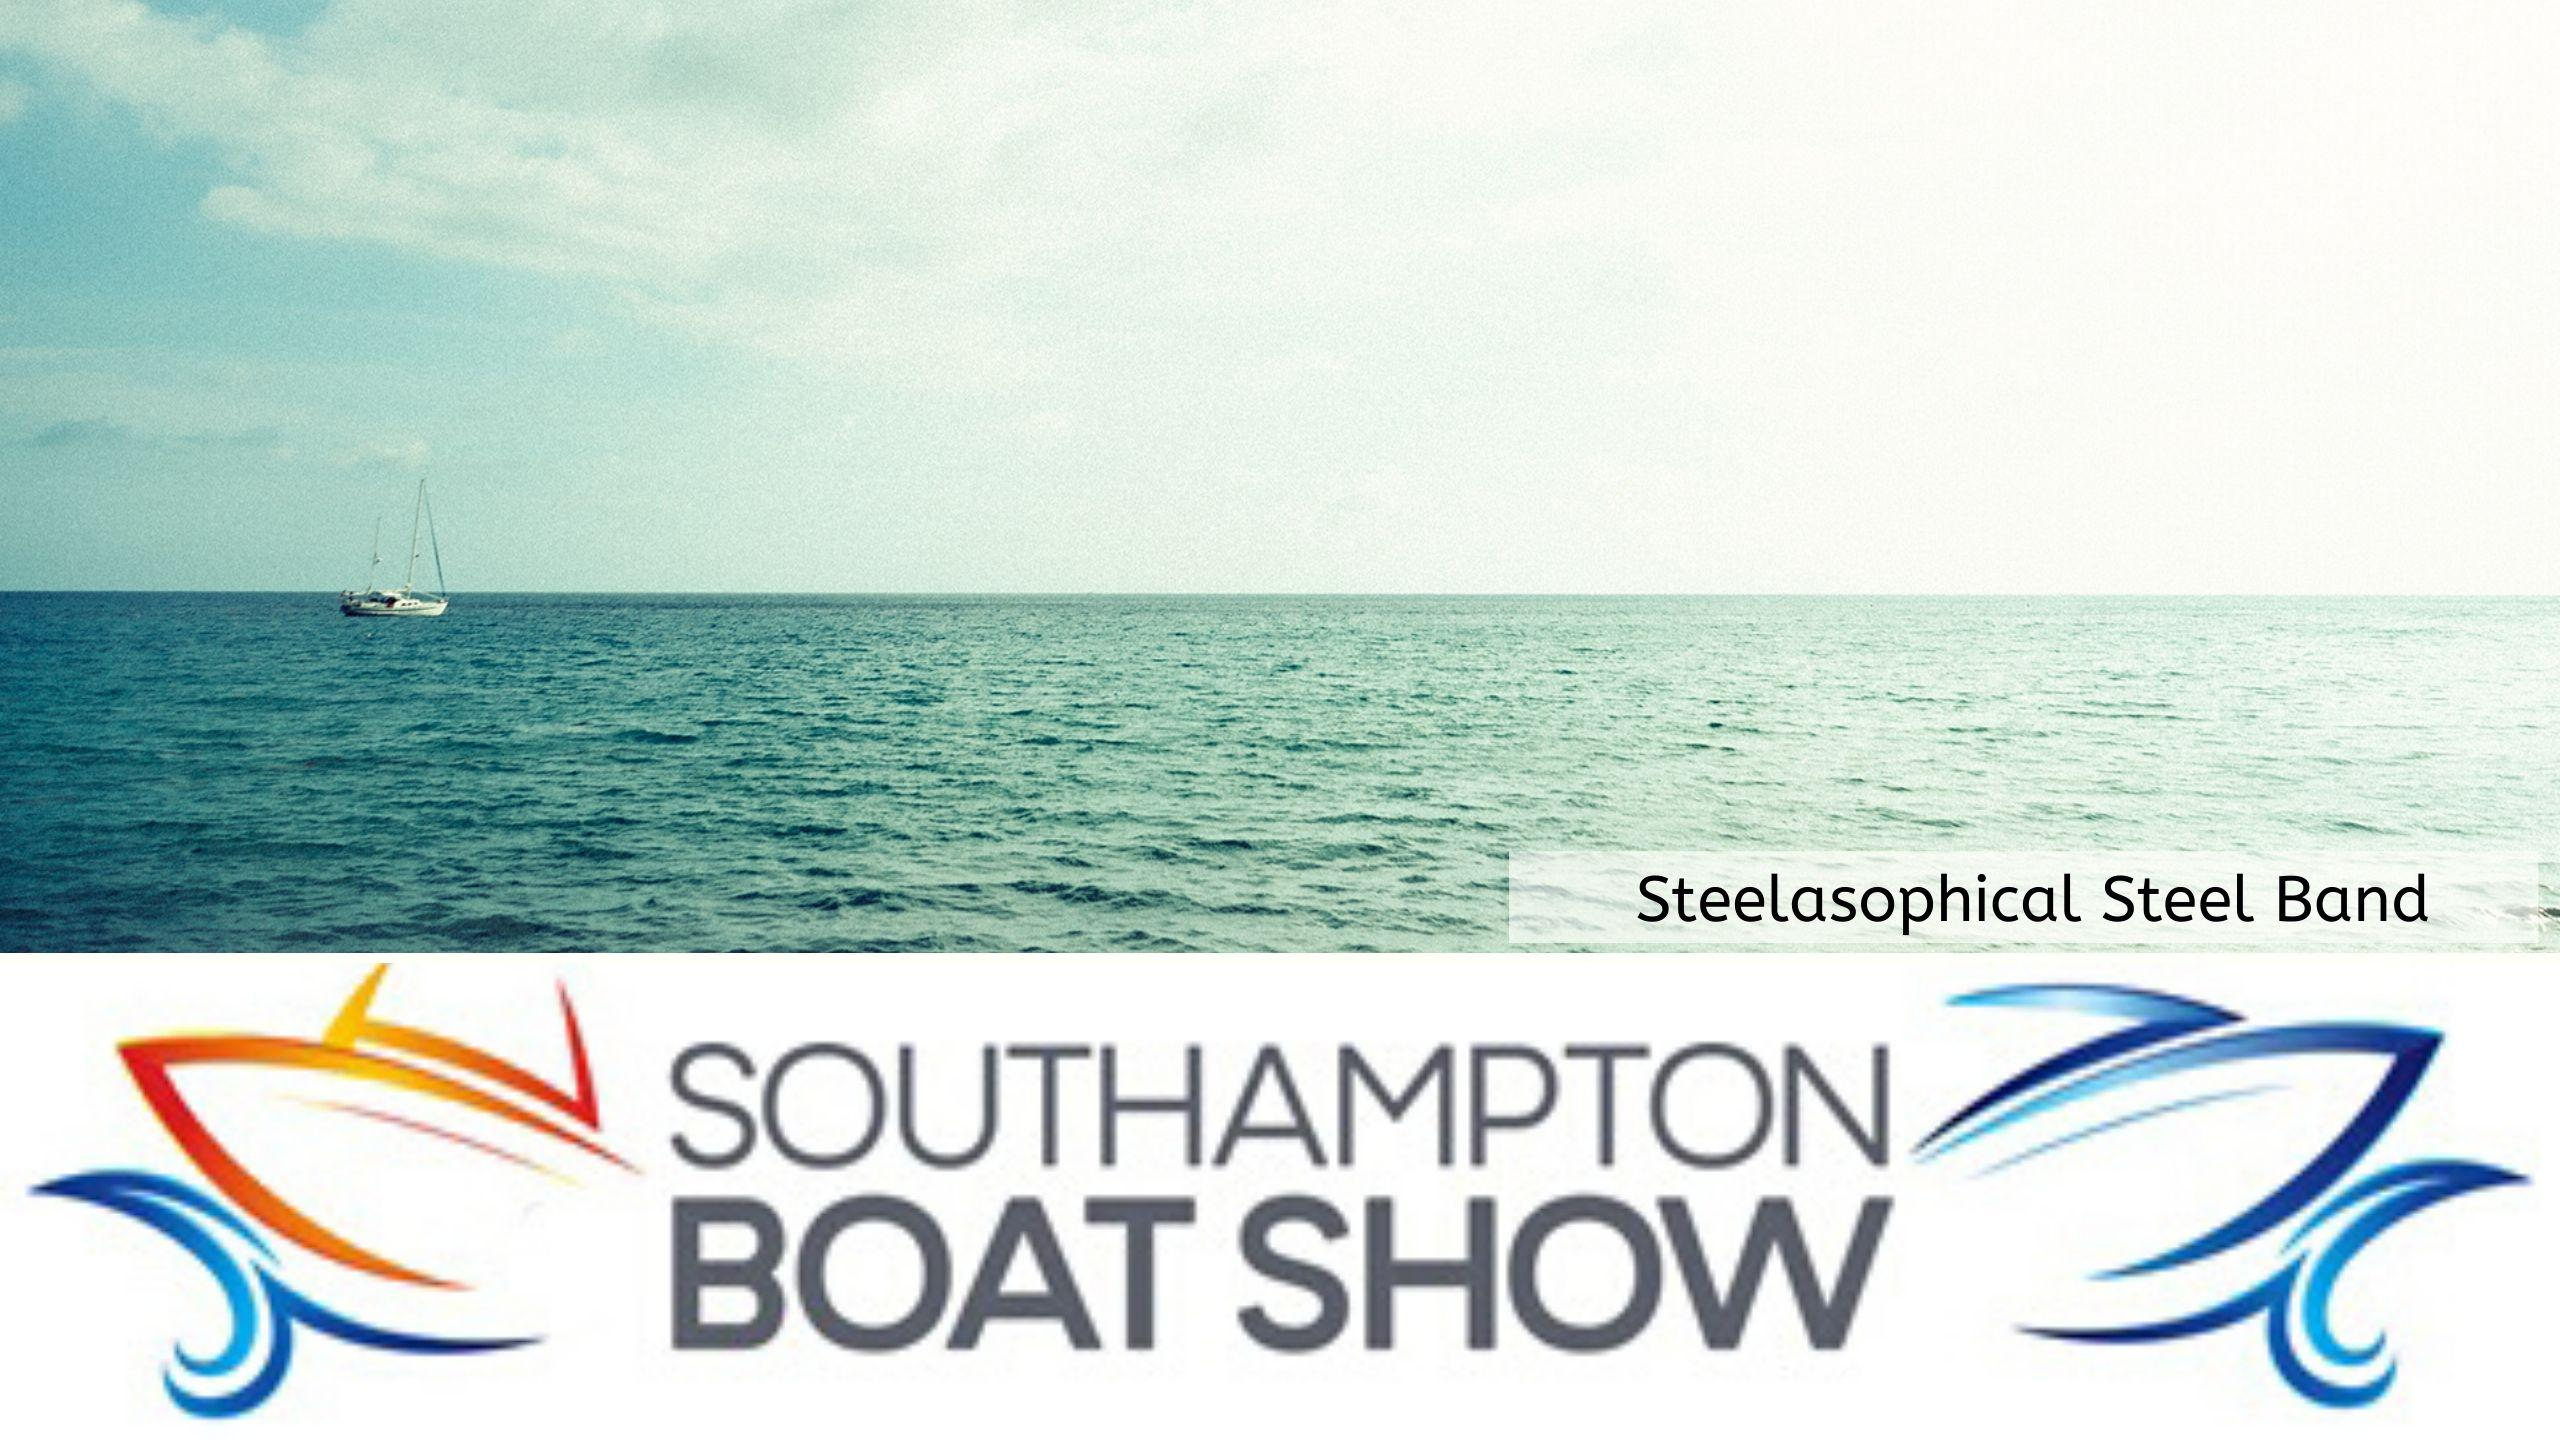 Steelasophical Steel Band Southampton Boat Show Yacht Market Music Stage